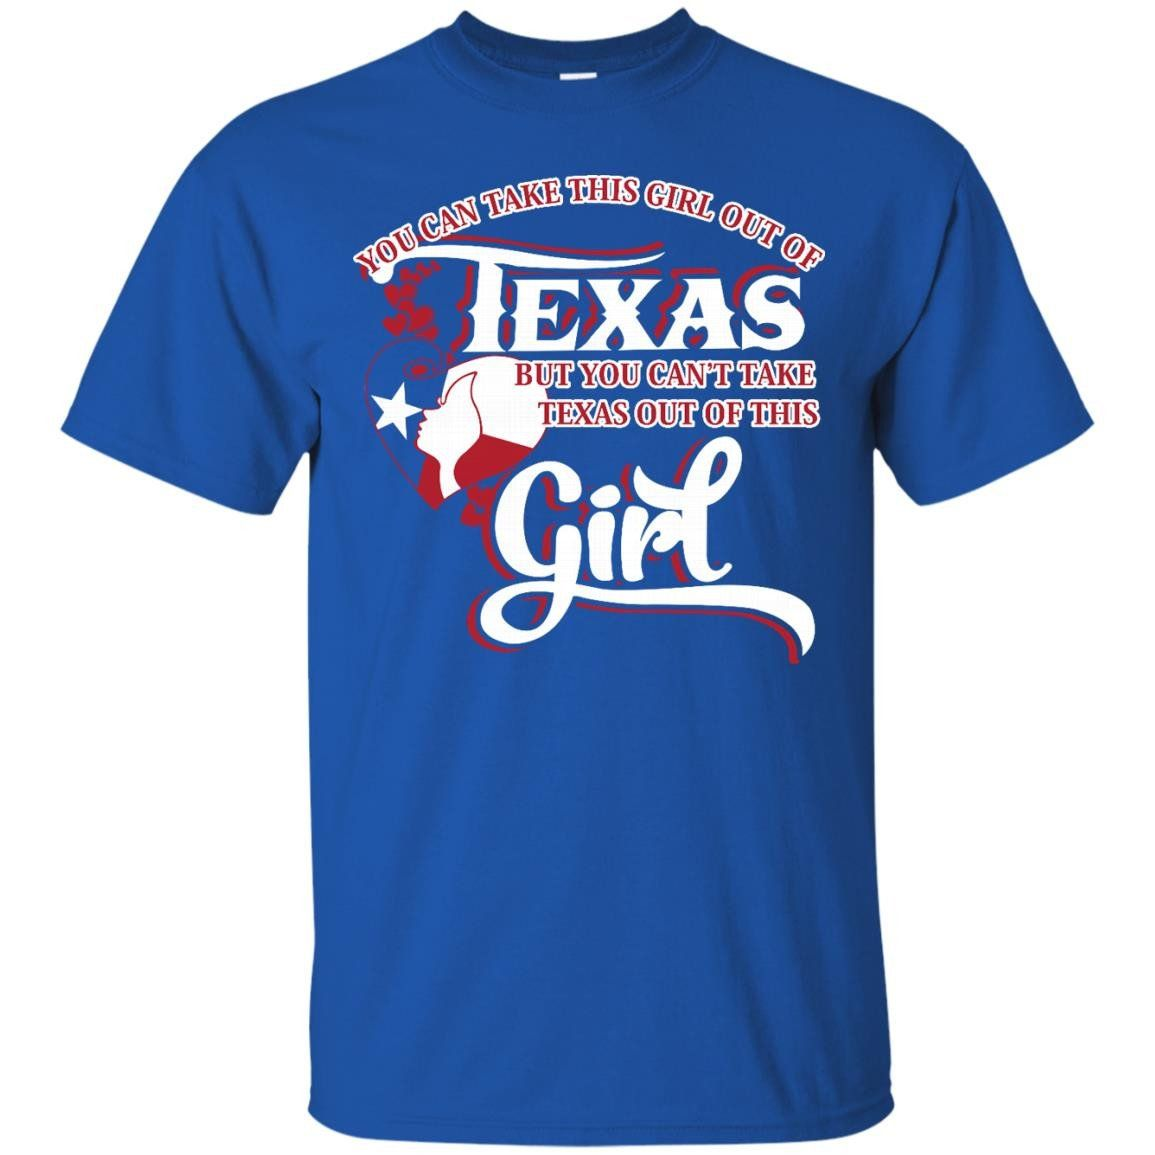 Texas T-shirts You Can't Take Texas Out Of This Girl Shirts Hoodies Sweatshirts